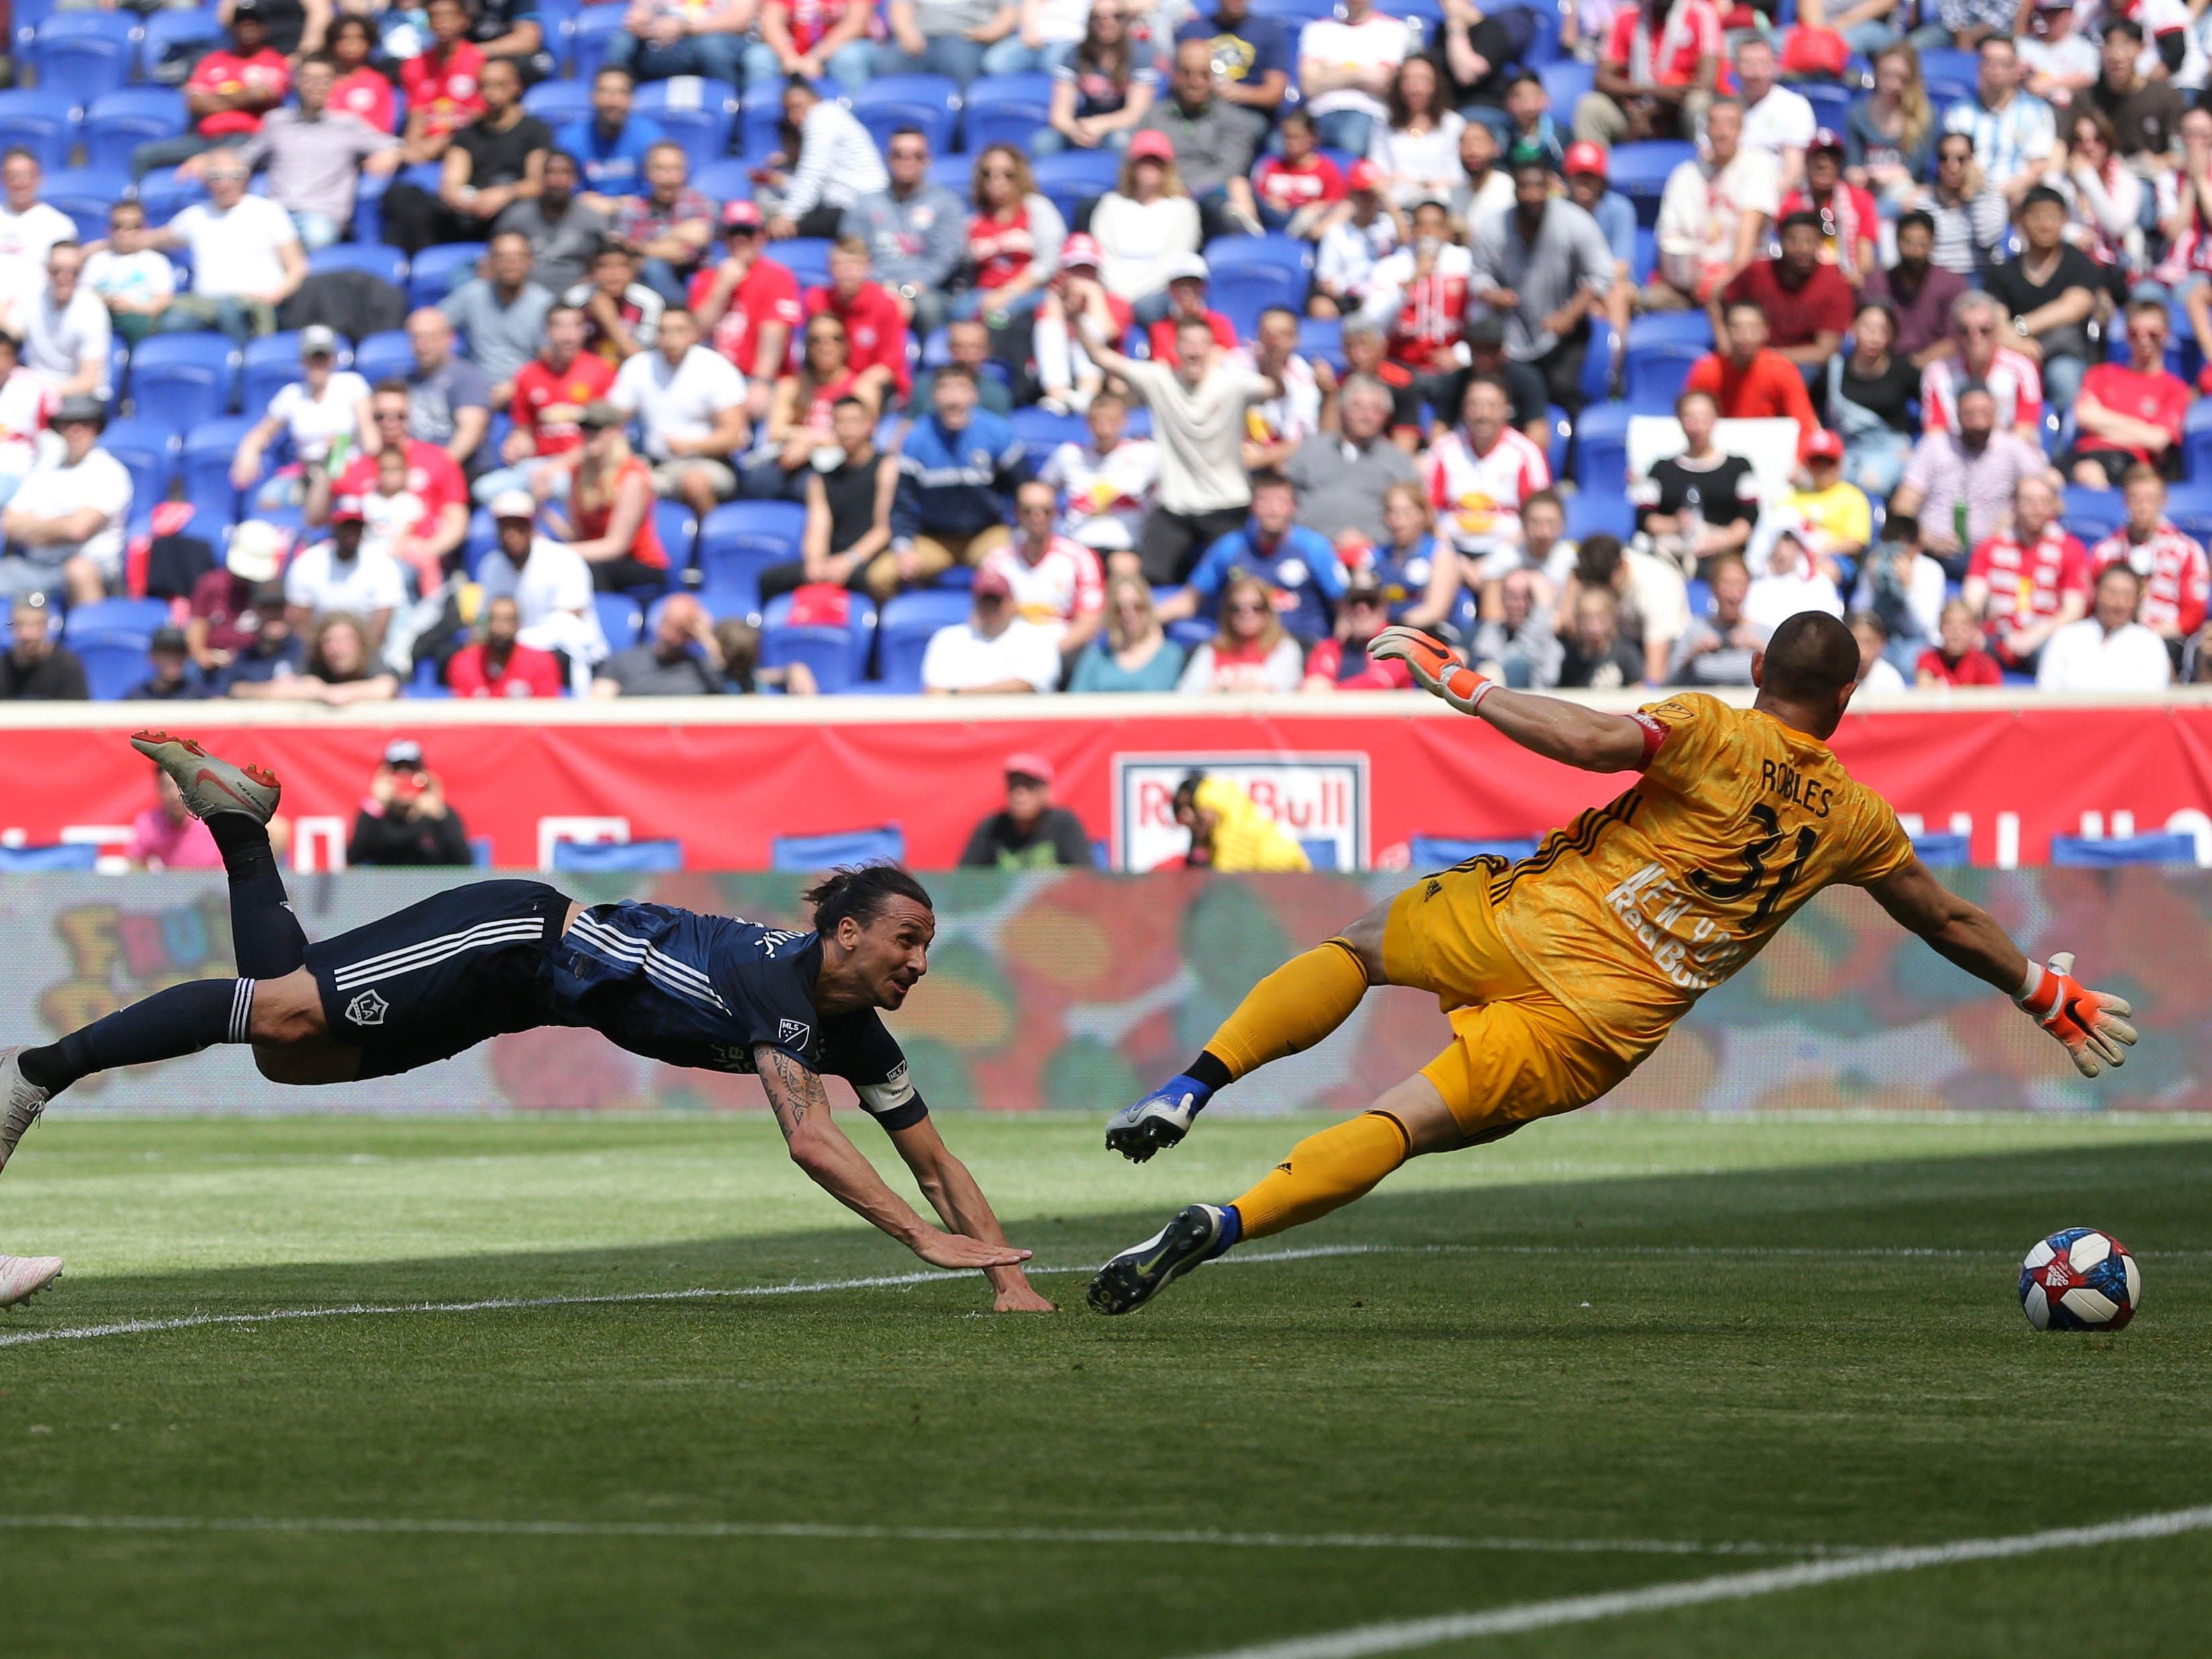 May 4: LA Galaxy forward Zlatan Ibrahimovic heads the ball past New York Red Bulls goalie Luis Robles for a goal during the first half at Red Bull Arena. RBNY won the game, 3-2.